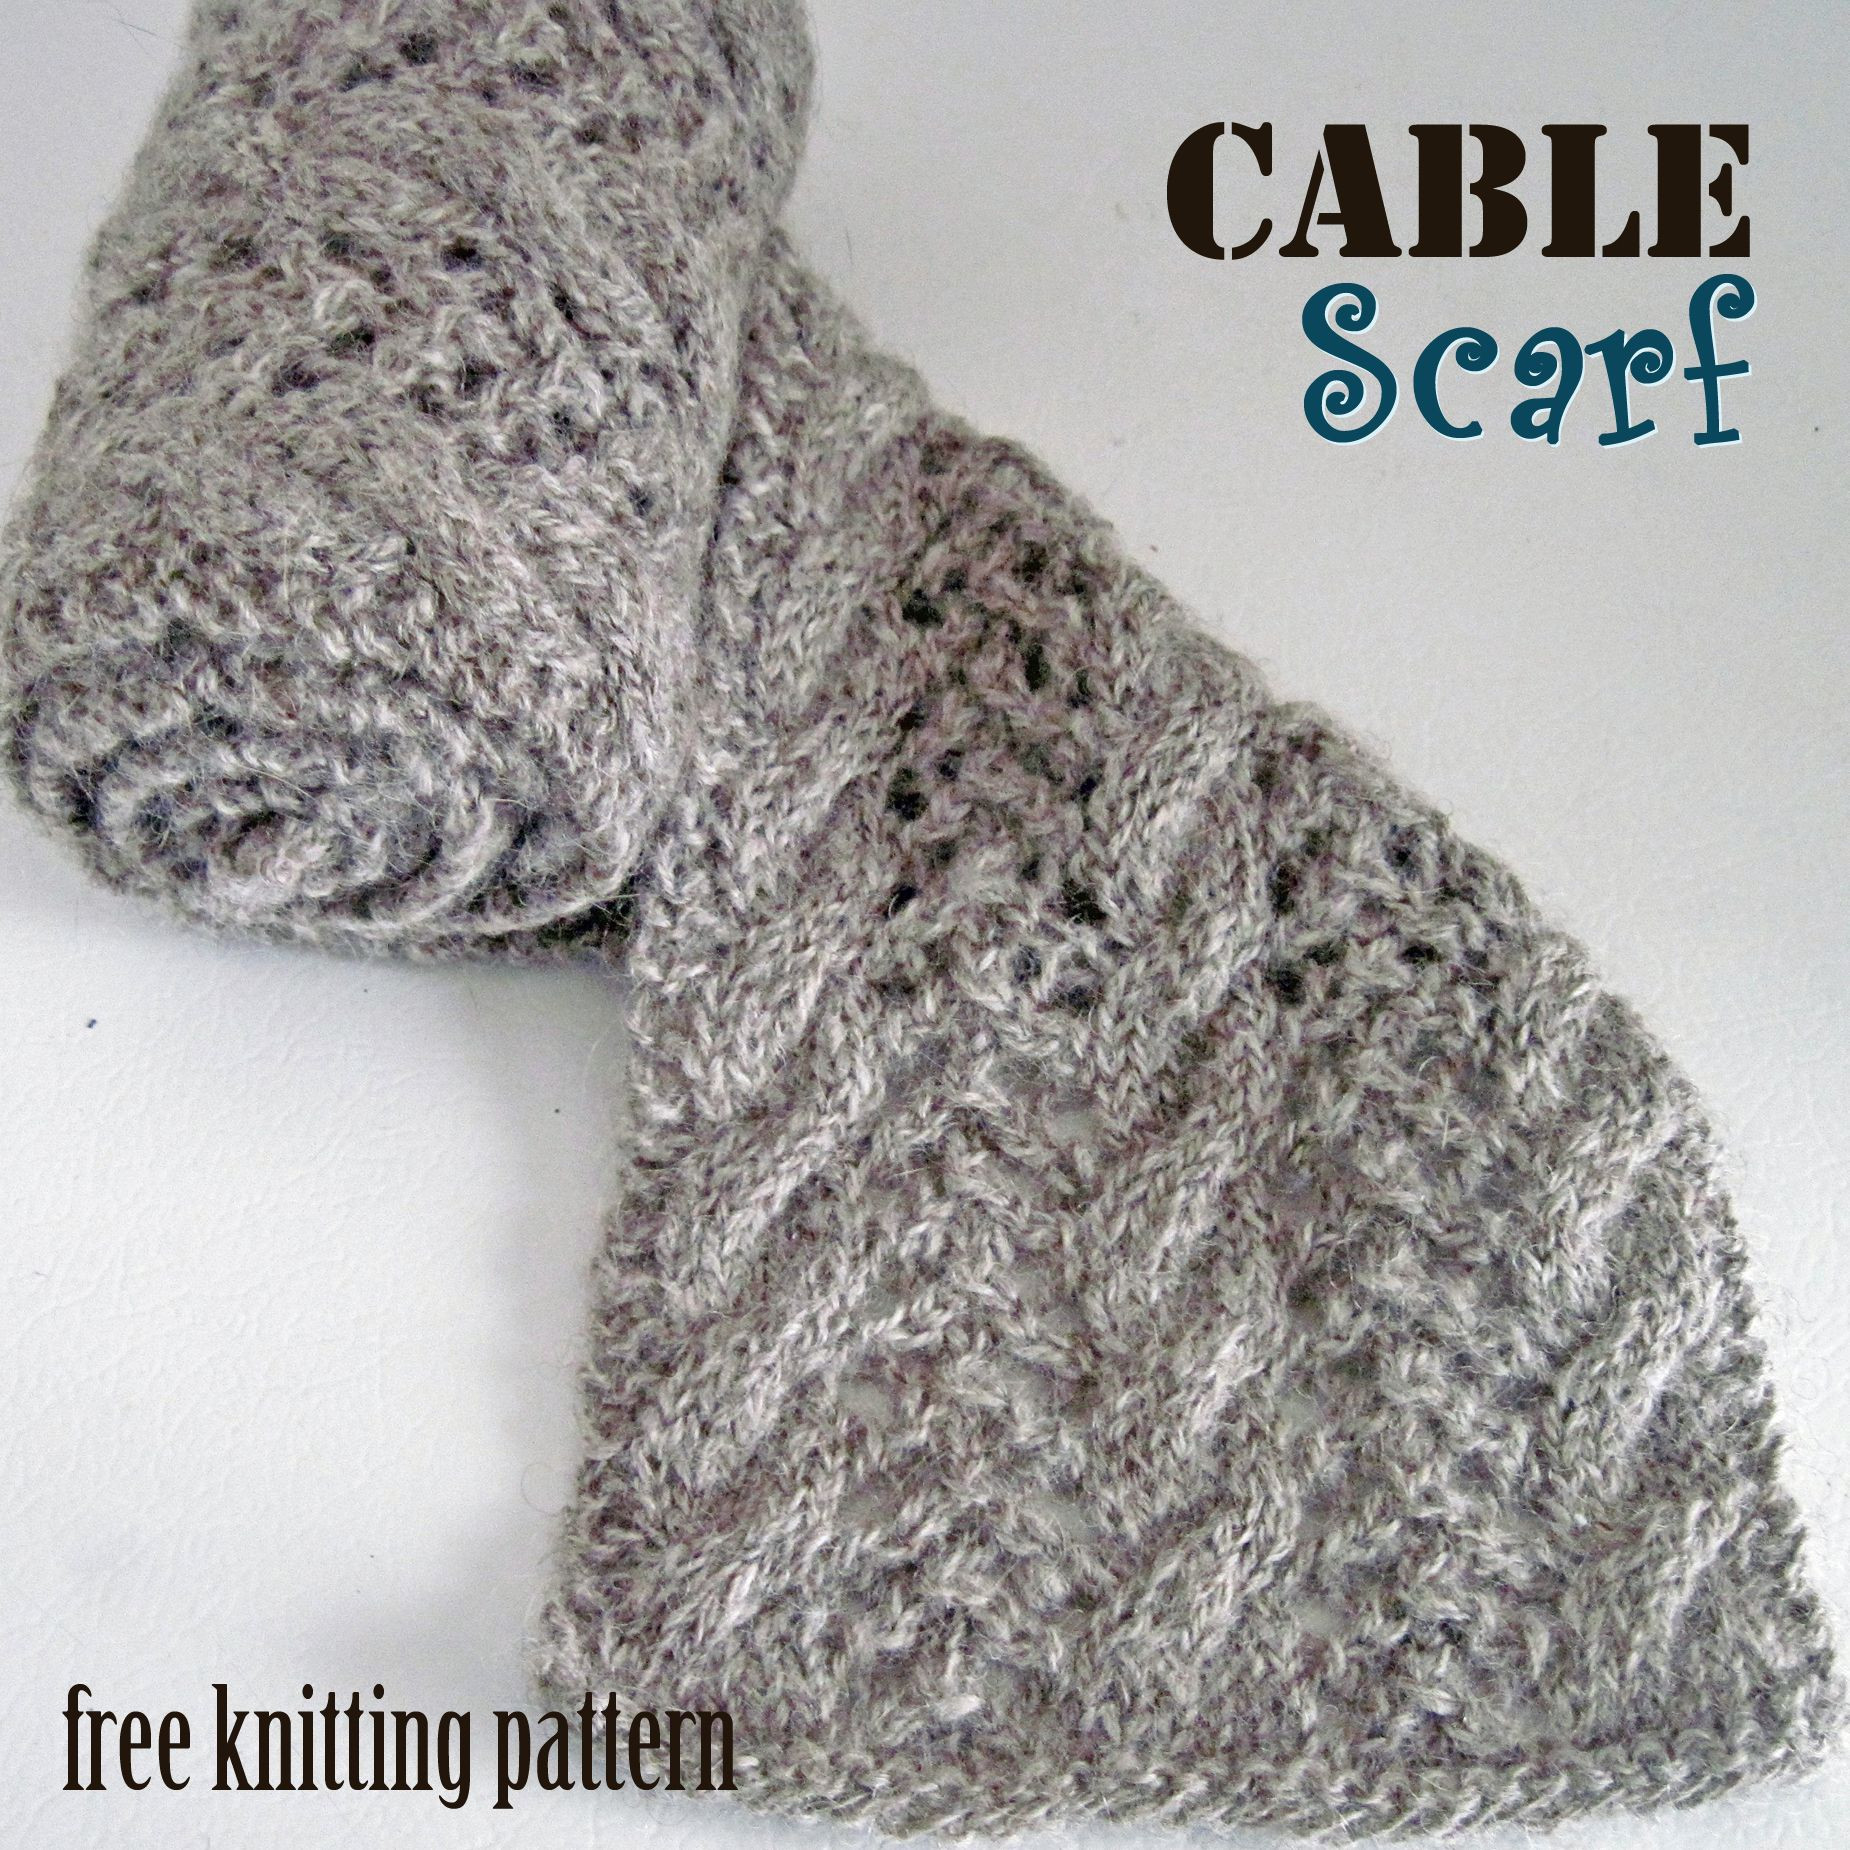 Best Of Cable Scarf Free Knitting Pattern Cable Knit Scarf Pattern Of Luxury 44 Ideas Cable Knit Scarf Pattern